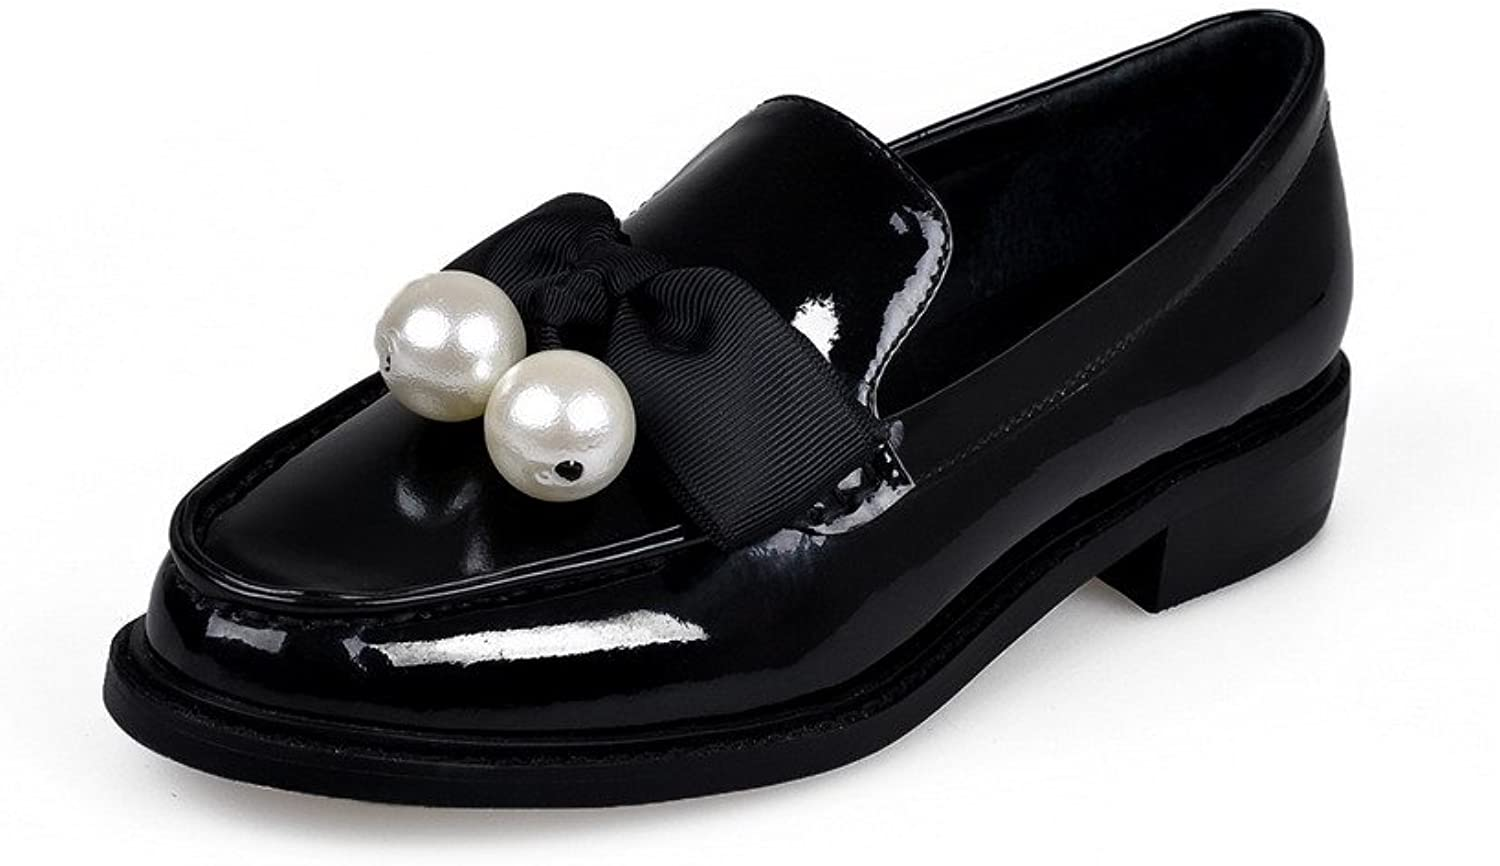 AllhqFashion Women's Round Closed Toe Cow Leather Low Heels Solid Pumps with Bowknot and Pearly